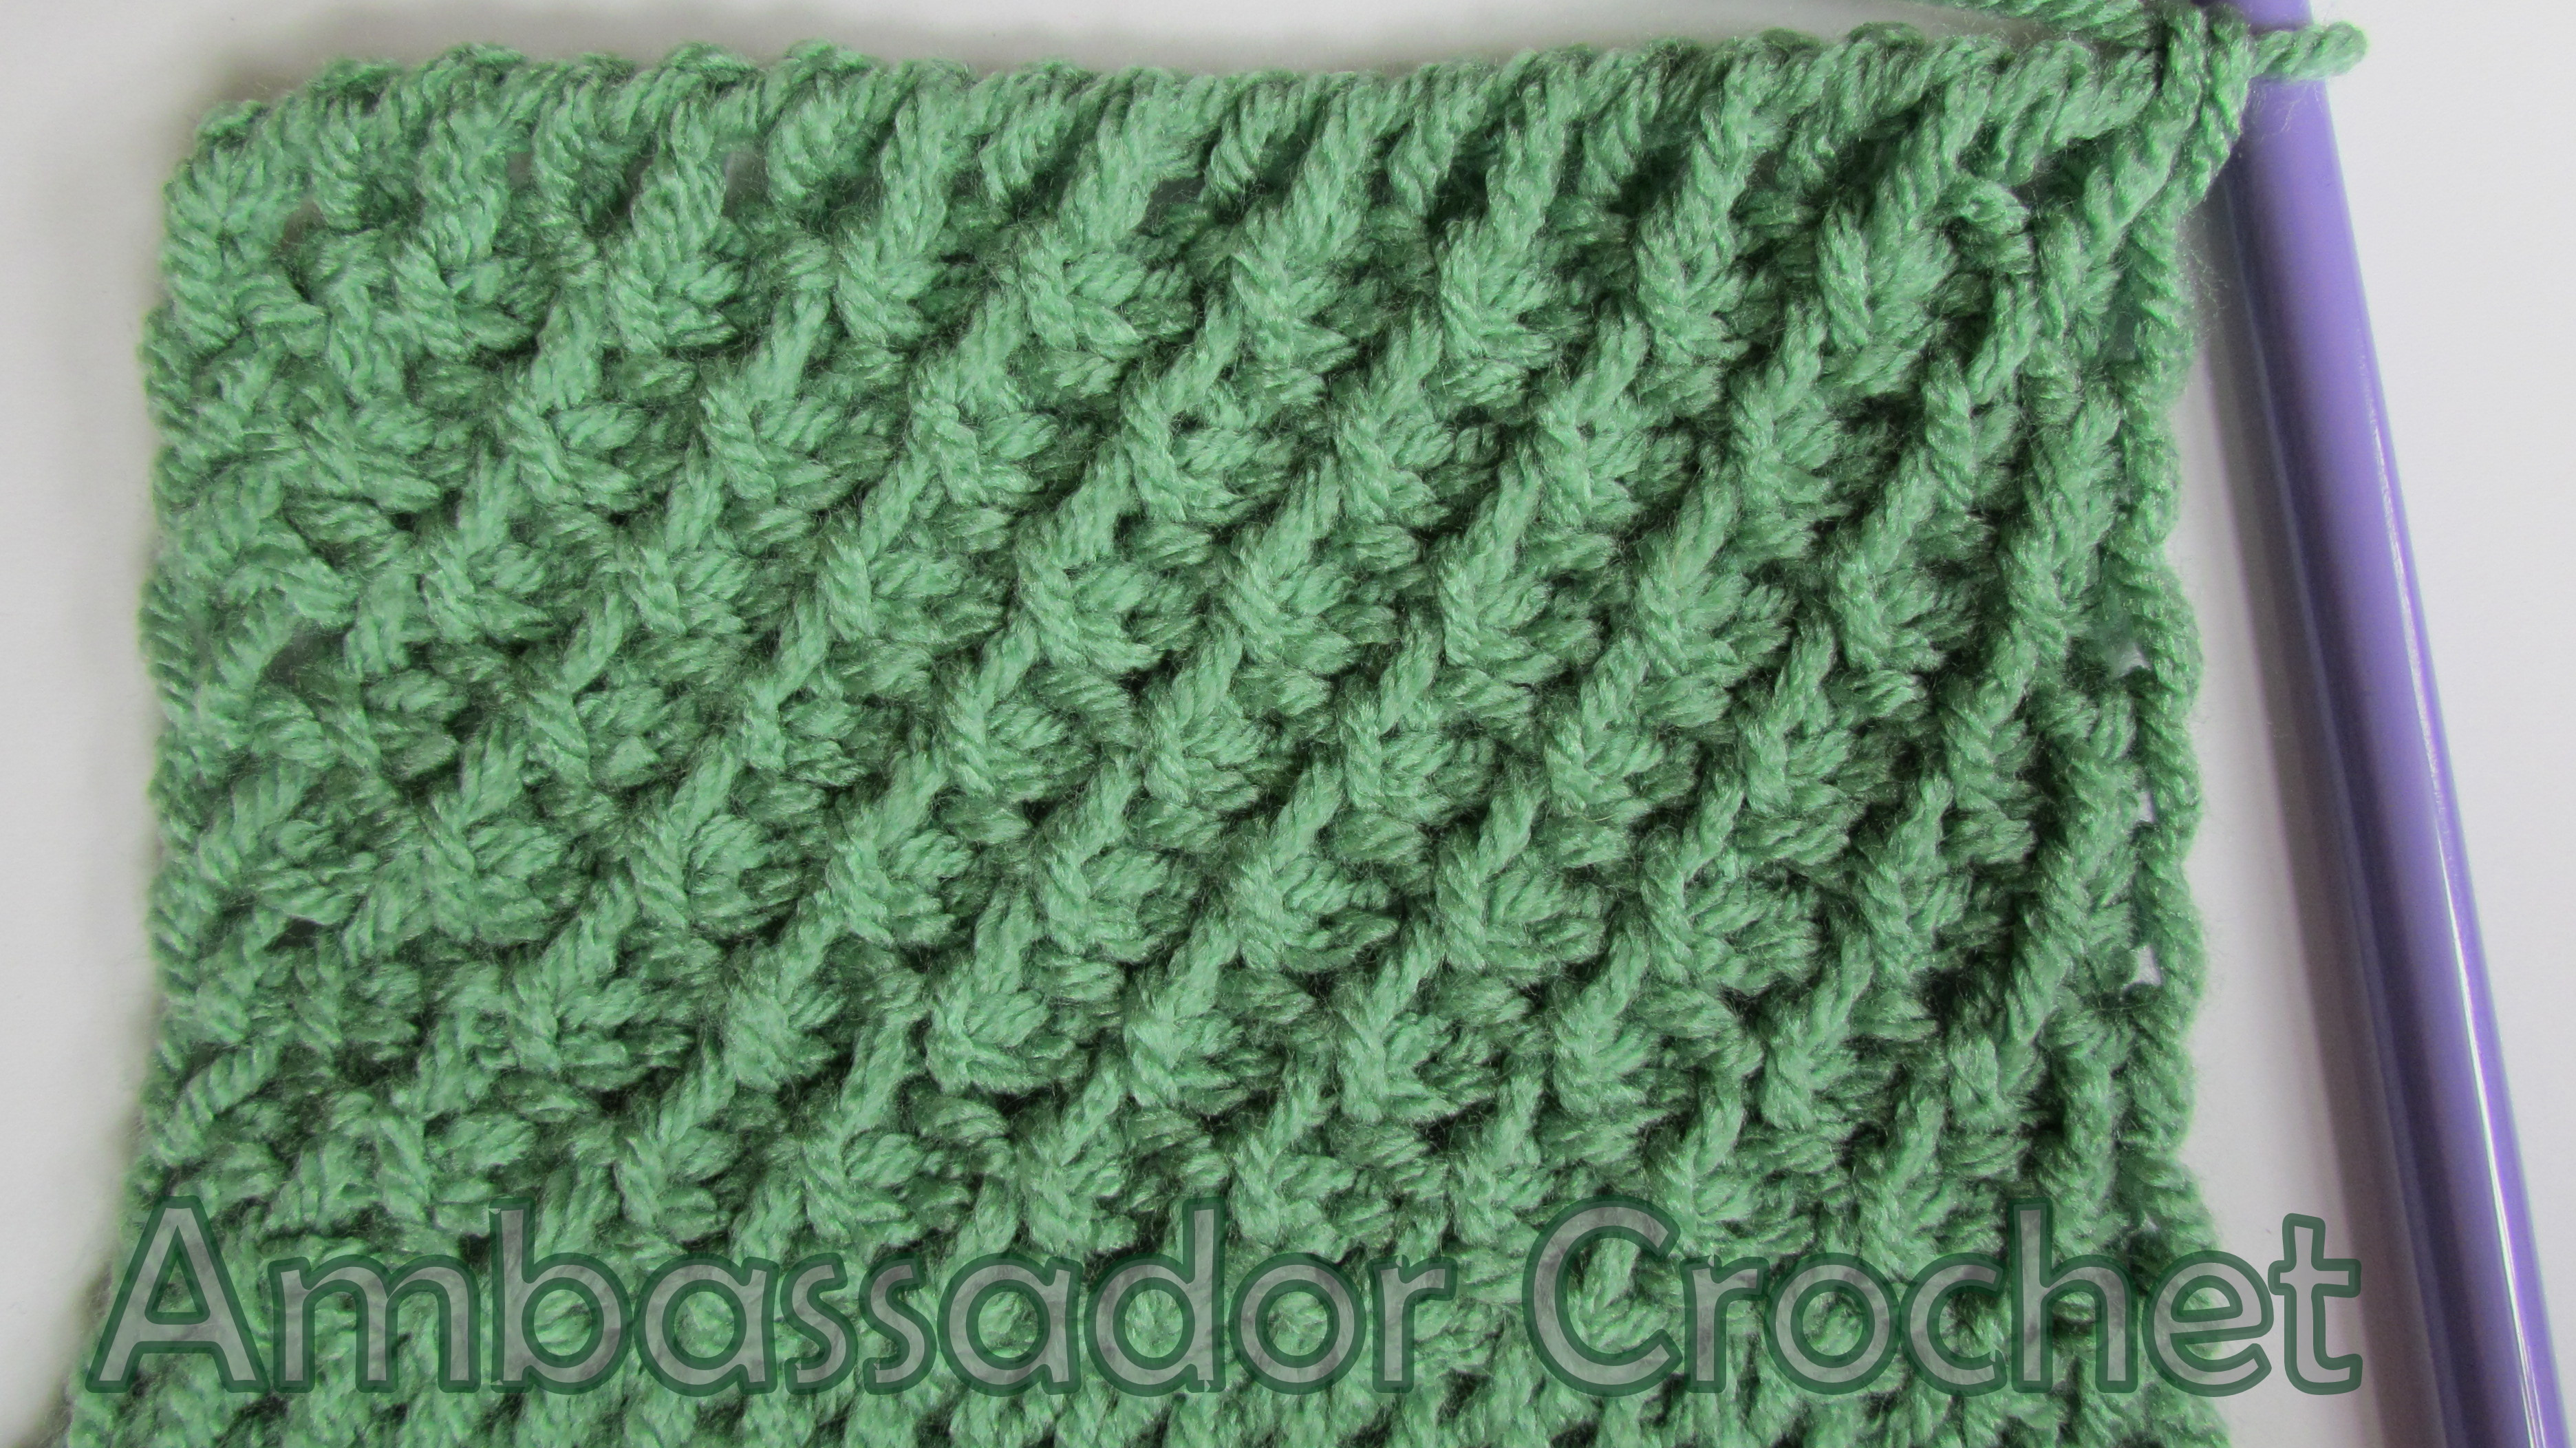 Tunisian Crochet Stitches Best Of Ambassador Crochet Tunisian Sampler Scarf Archives Of Wonderful 41 Pics Tunisian Crochet Stitches